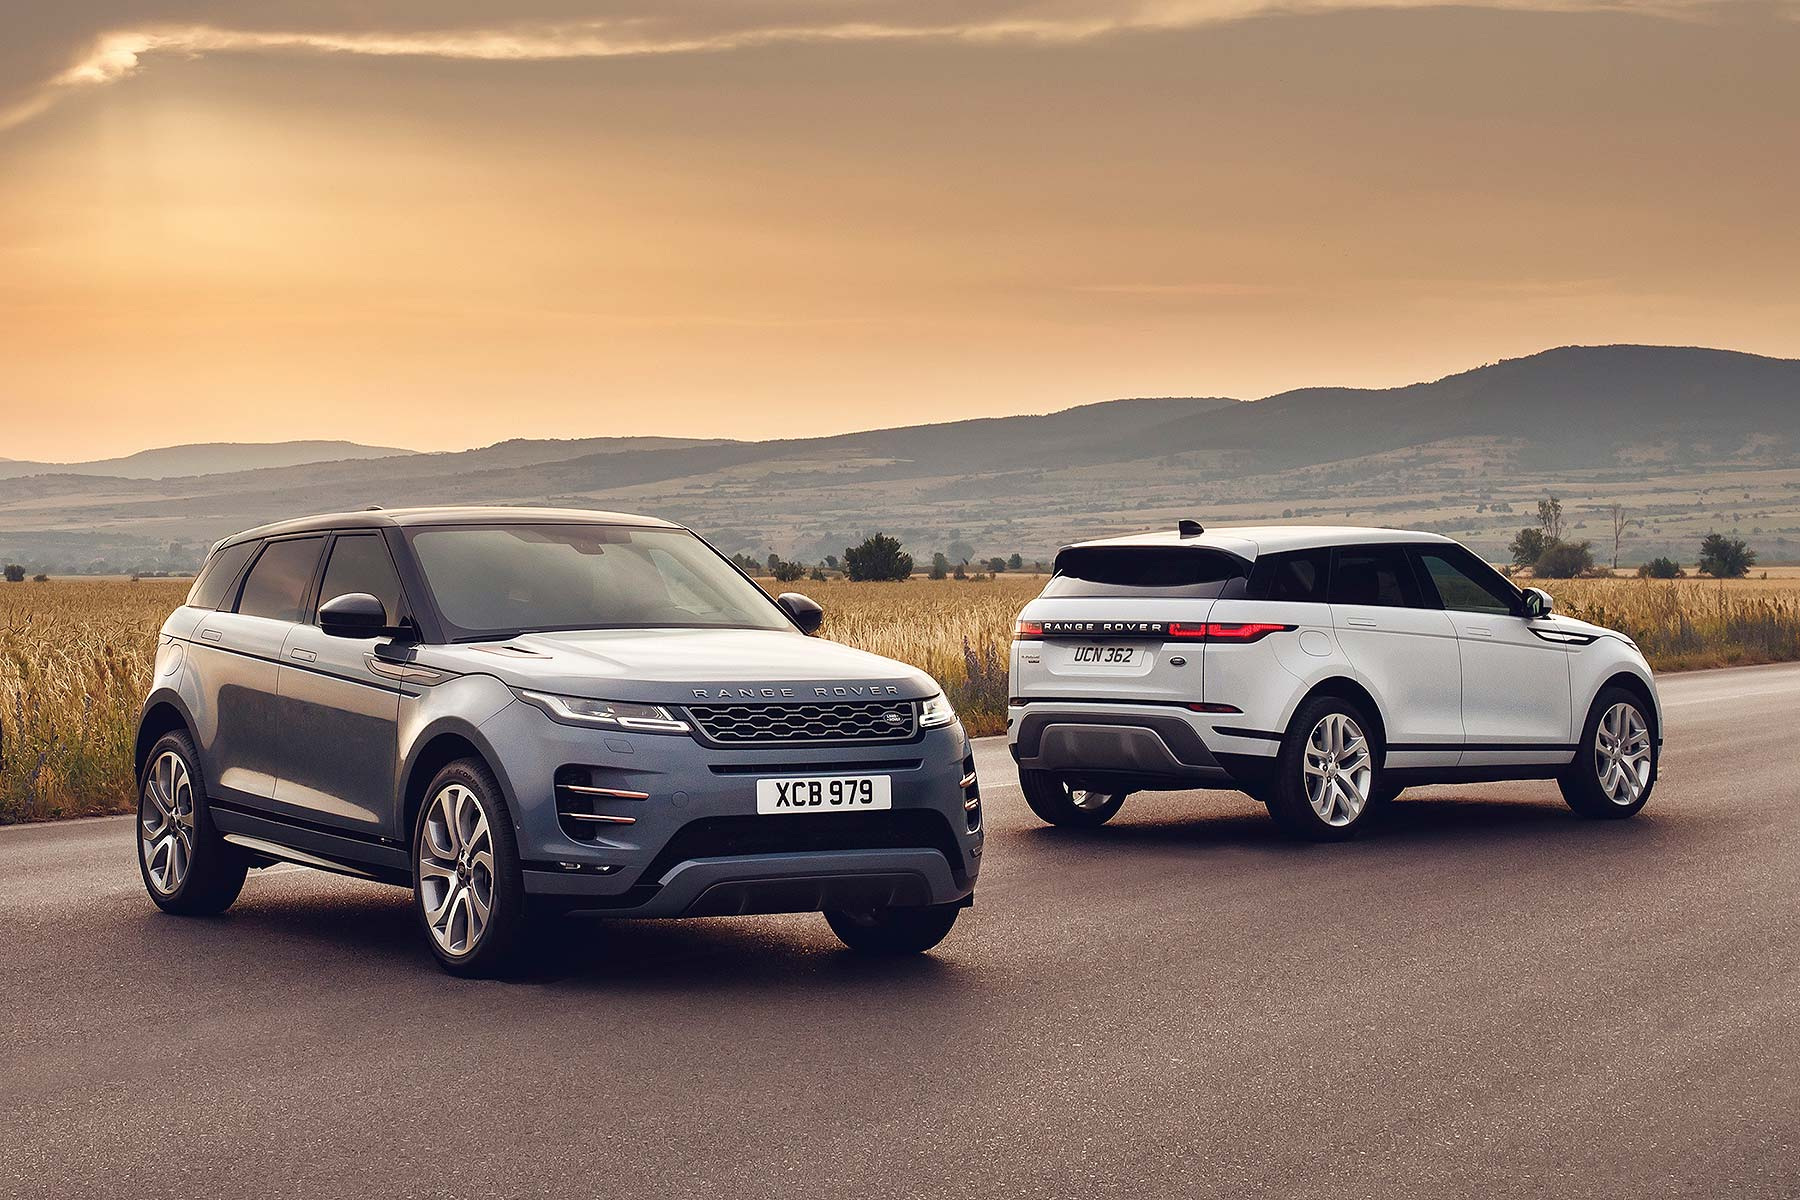 New 2019 Range Rover Evoque